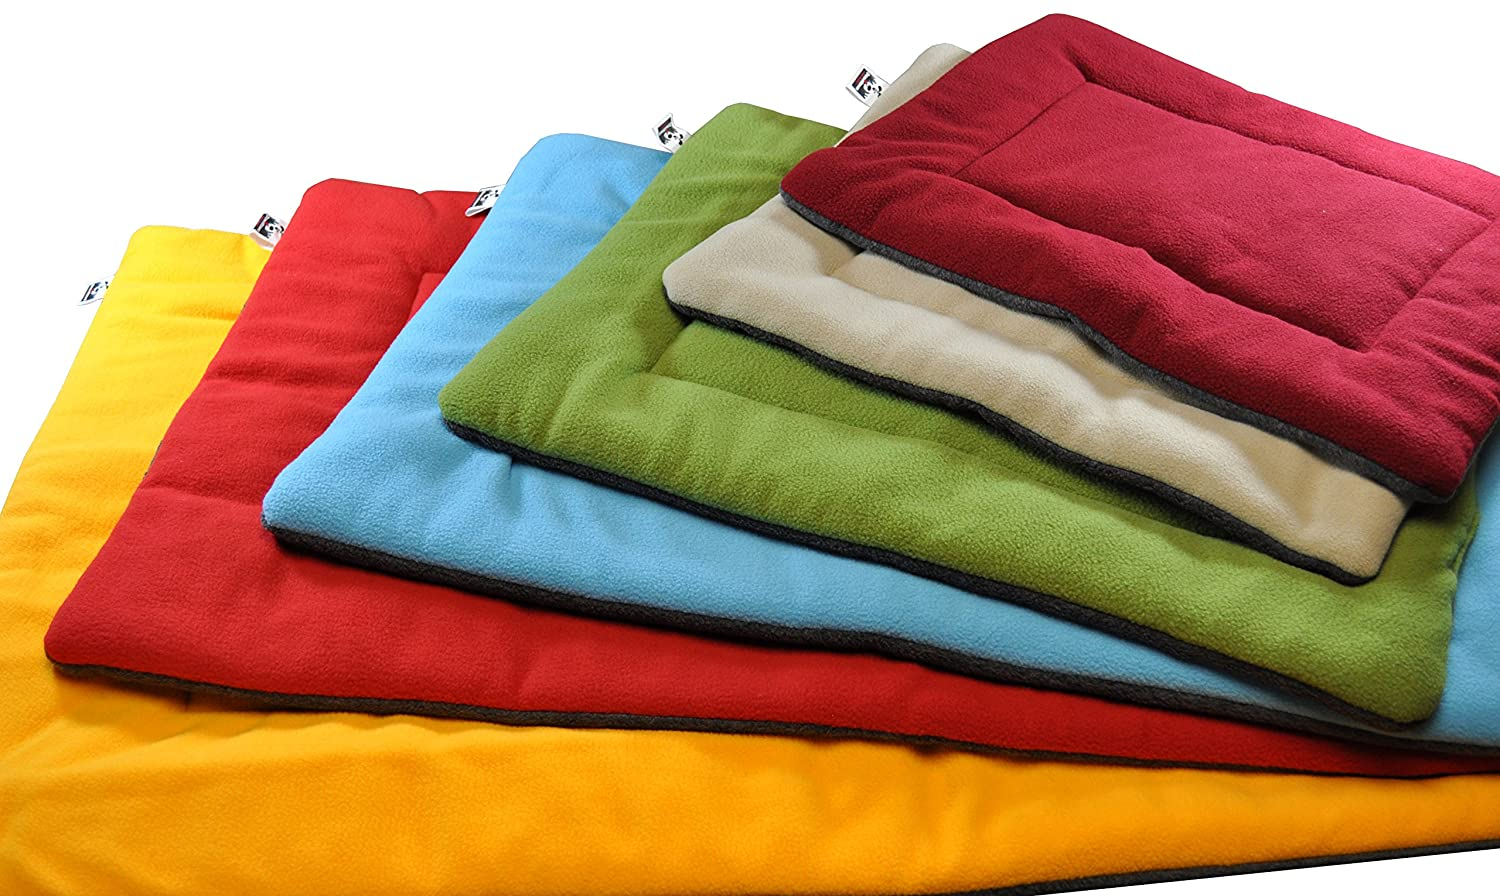 Comfort Pet Dog Crate Mat and Nap Pad, Bed (Blue, Red, Maroon, Green, Tan, Fiesta - X-Large, Large, Medium, Small, X-Small), by Downtown Pet Supply